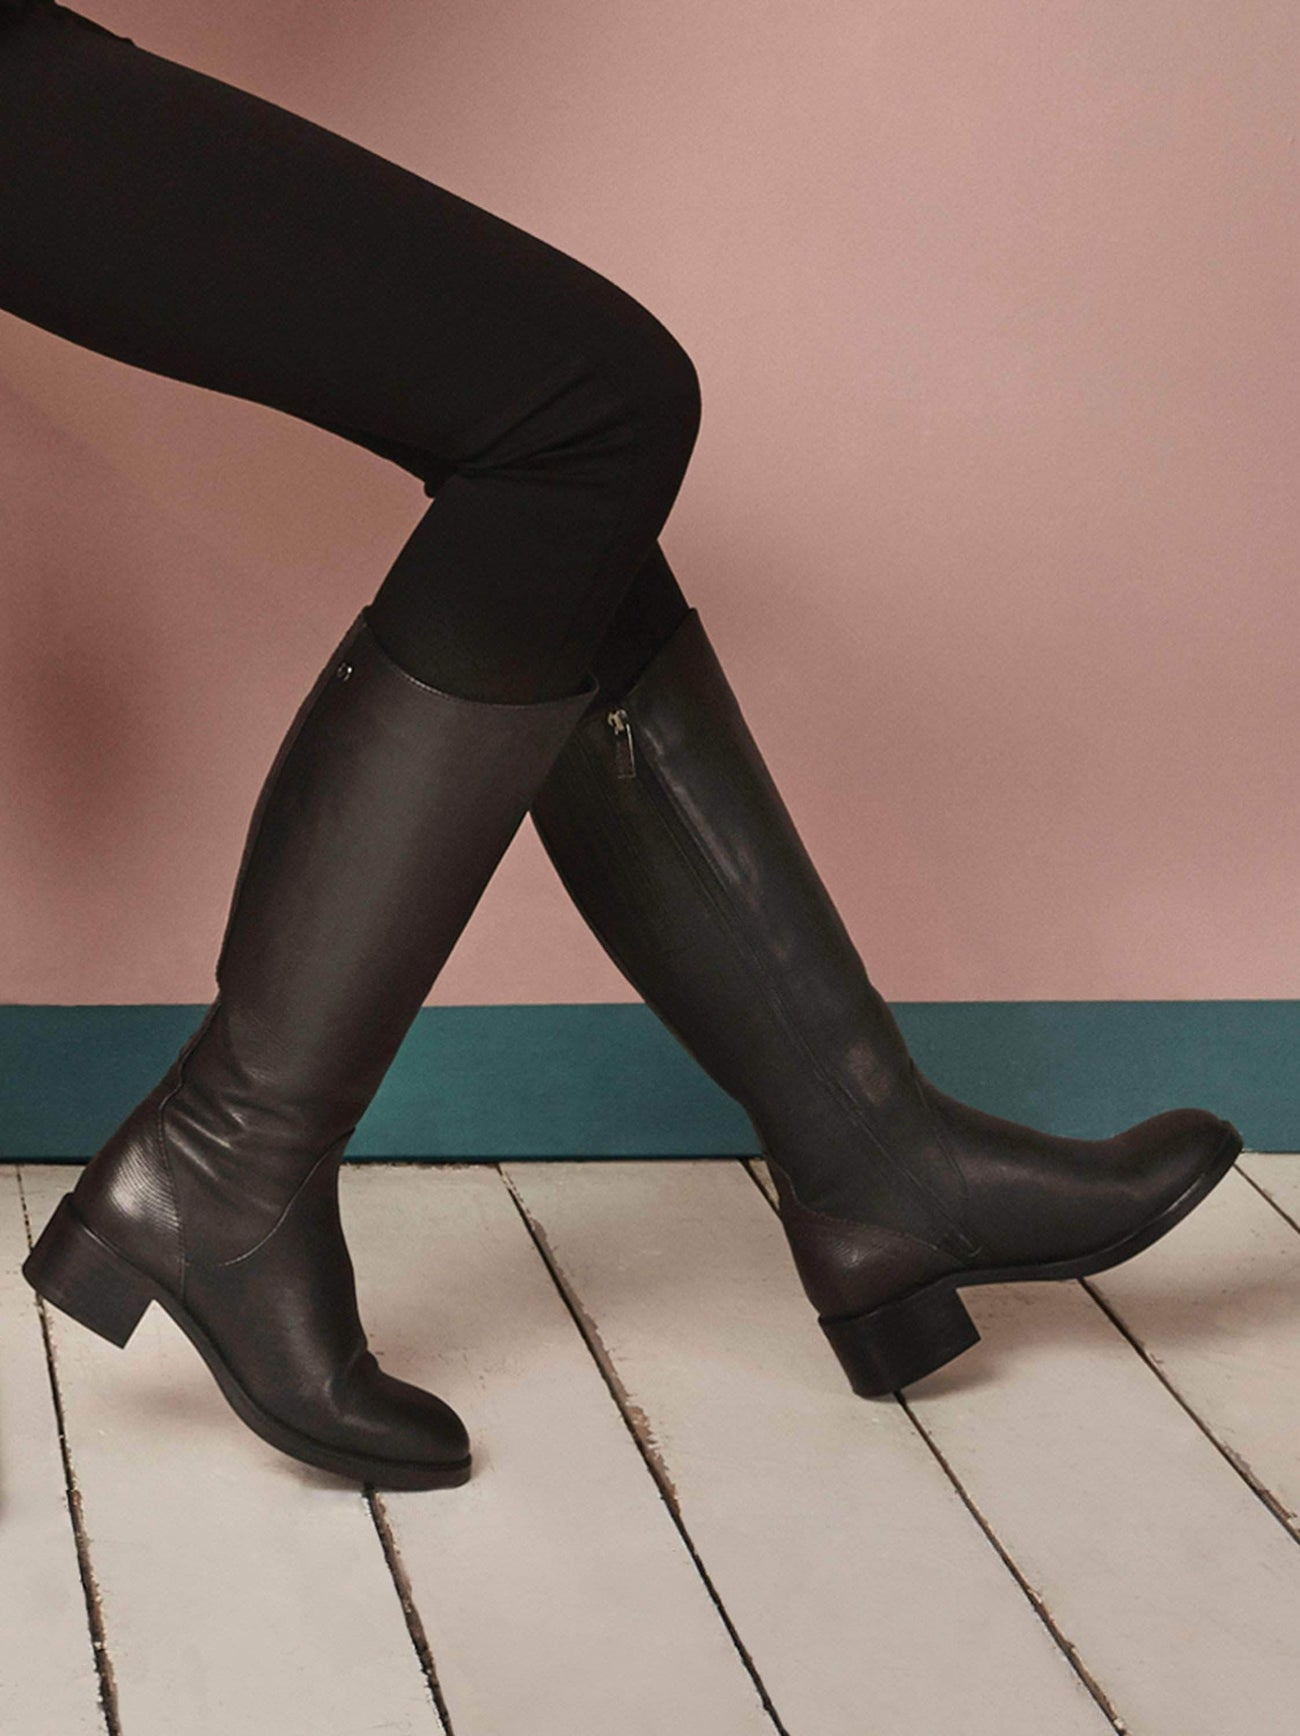 Kestrel in black leather, a riding-style boot with an asymmetric topline.